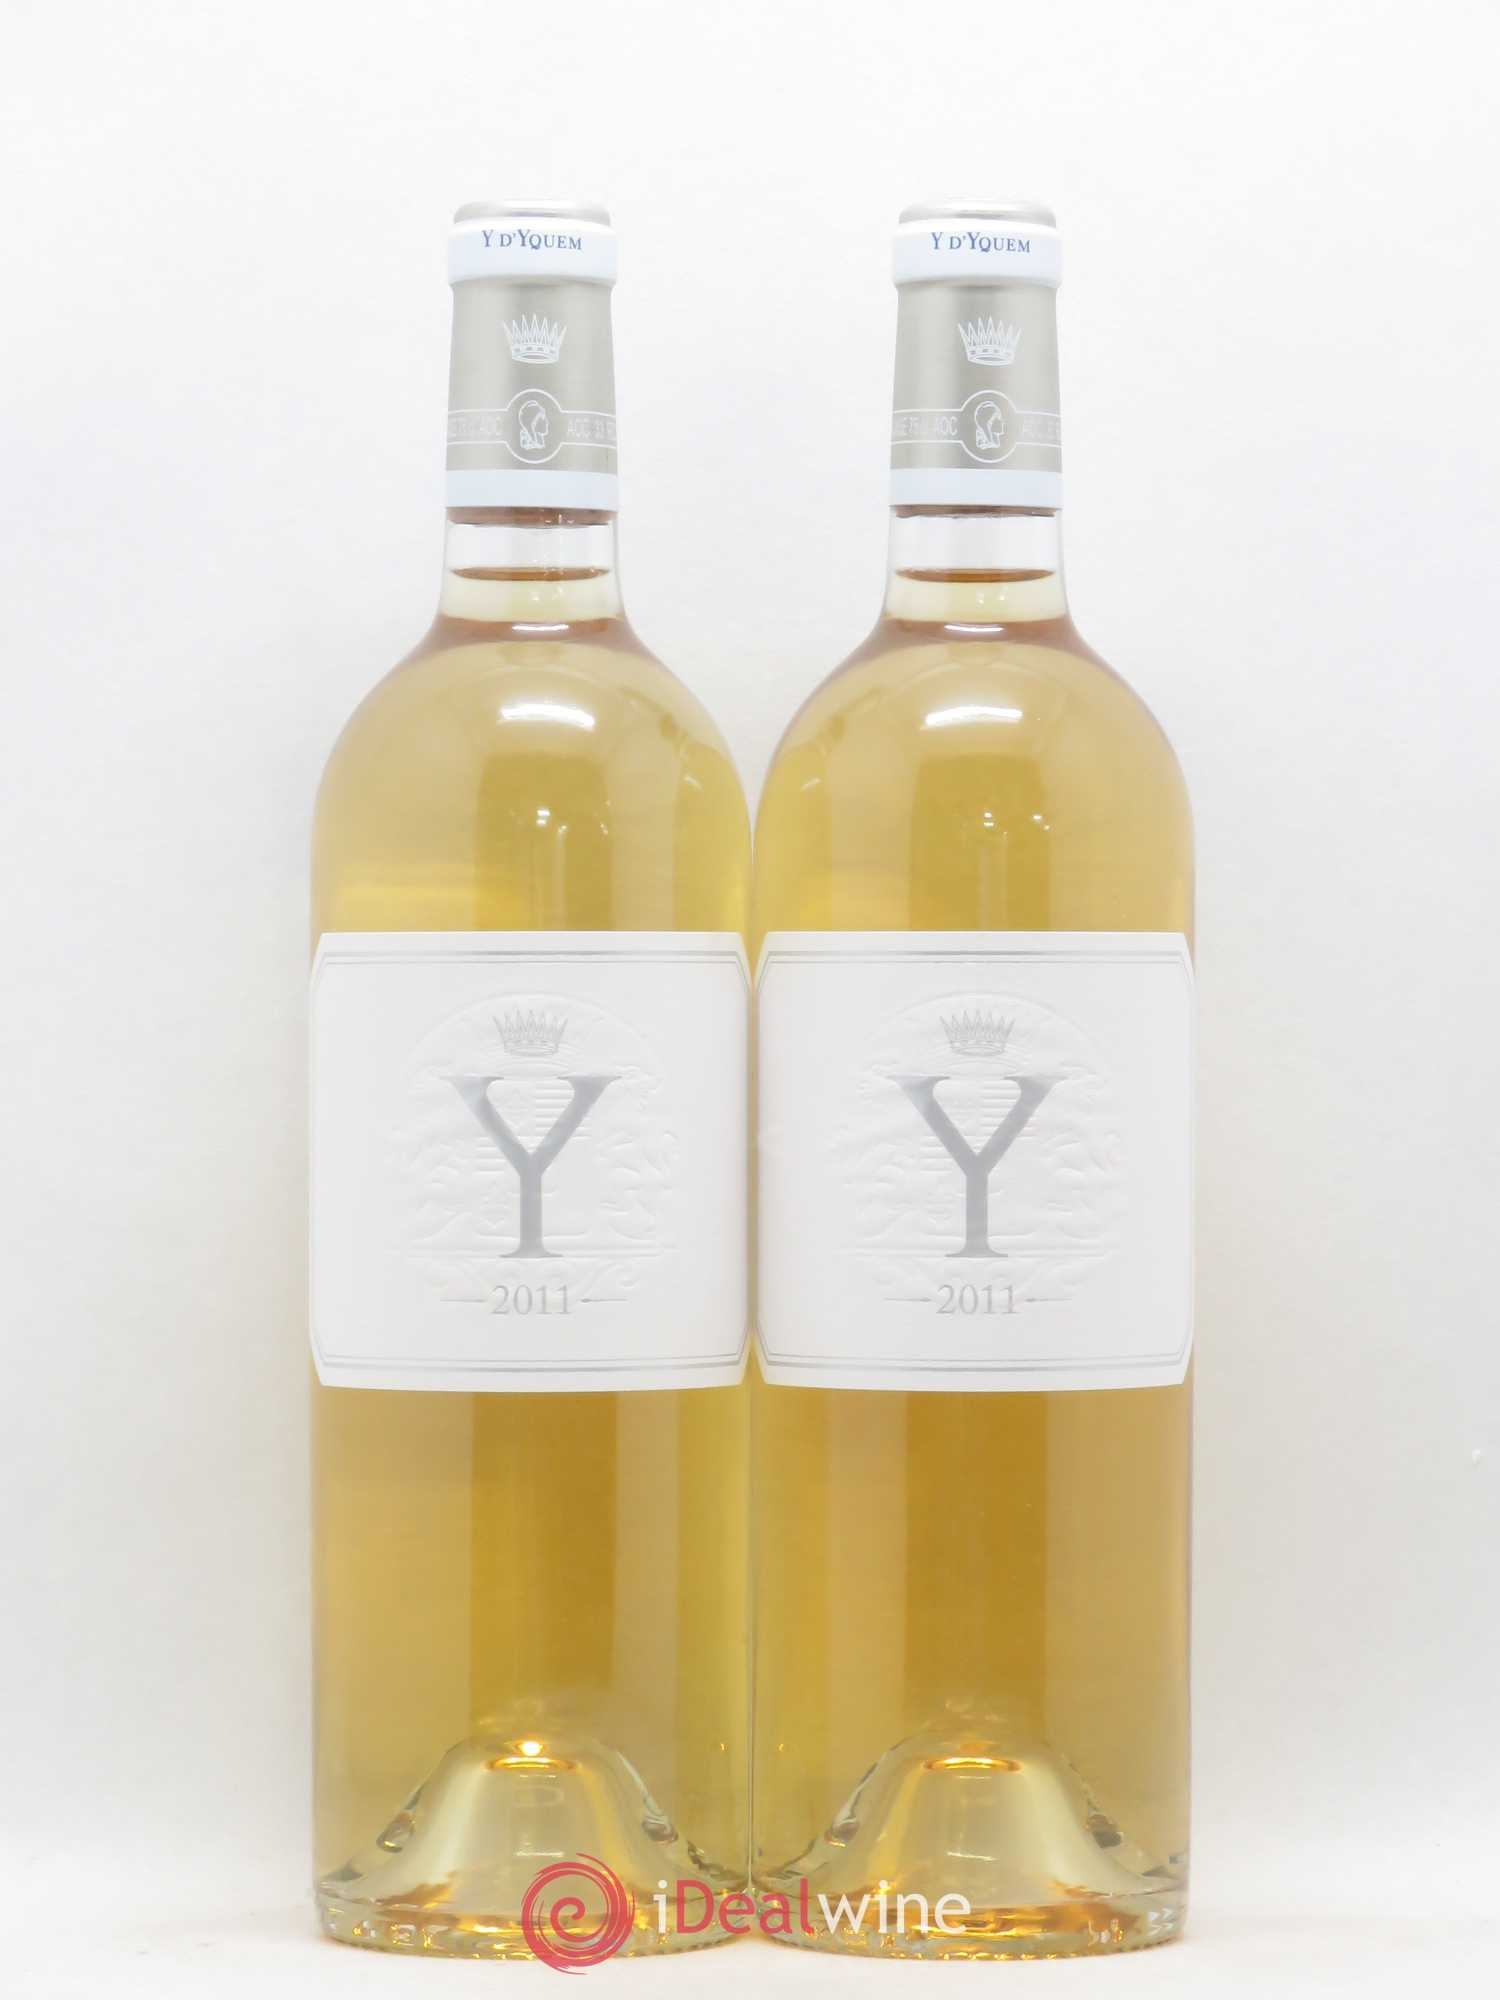 Y de Yquem  2011 - Lot of 2 Bottles